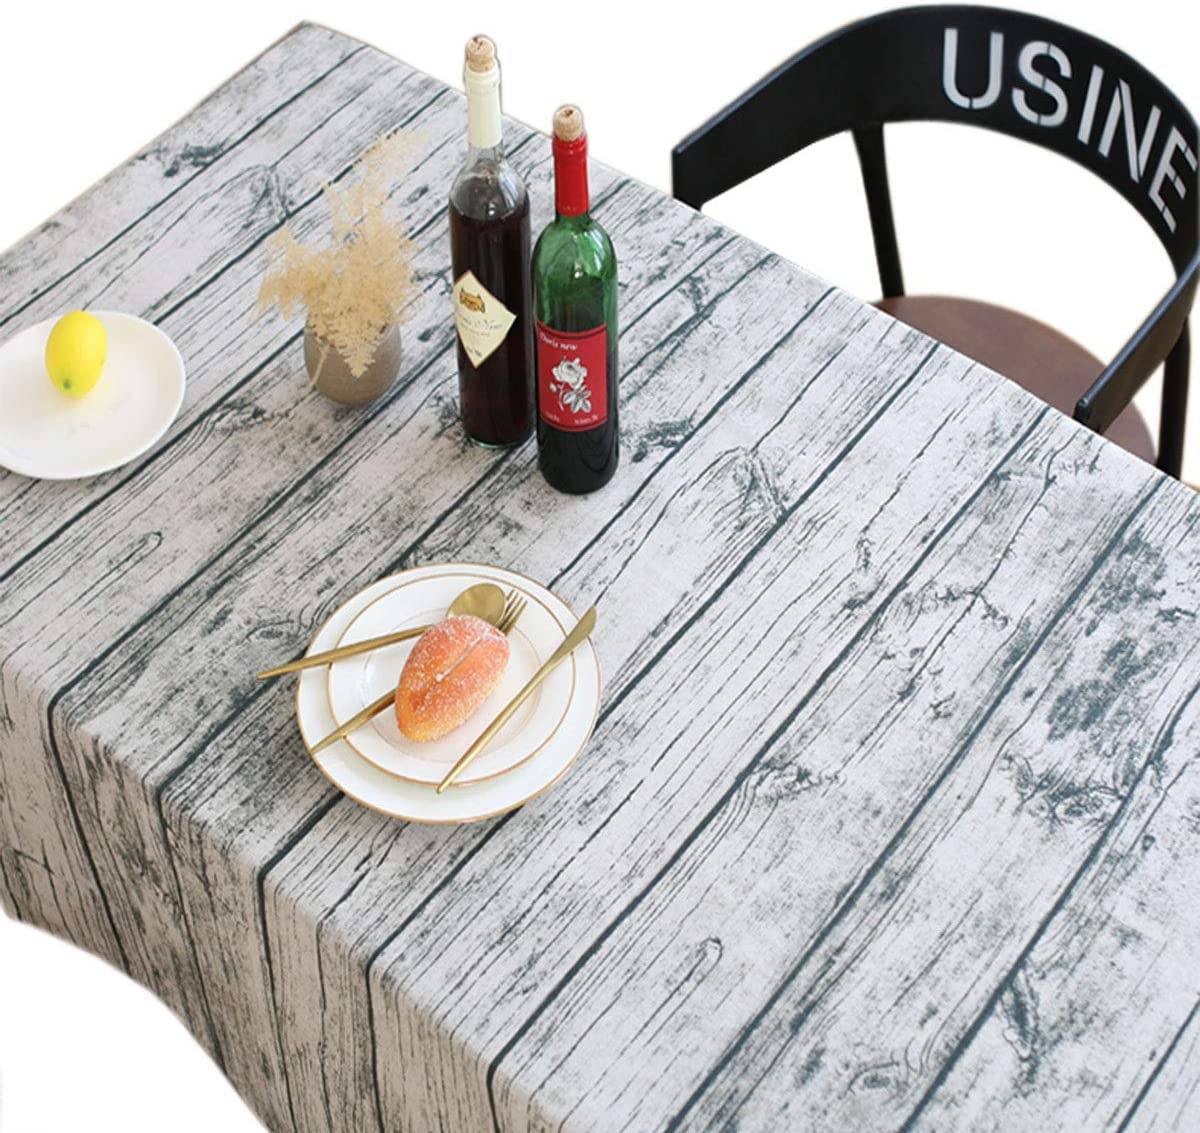 Bringsine Washable Cotton Linen Vintage Wooden Grain Pattern Rectangle Tablecloth Dinner Picnic Table Cloth Home Decoration Assorted Size(Rectangle/Oblong, 55 x 79 Inch)